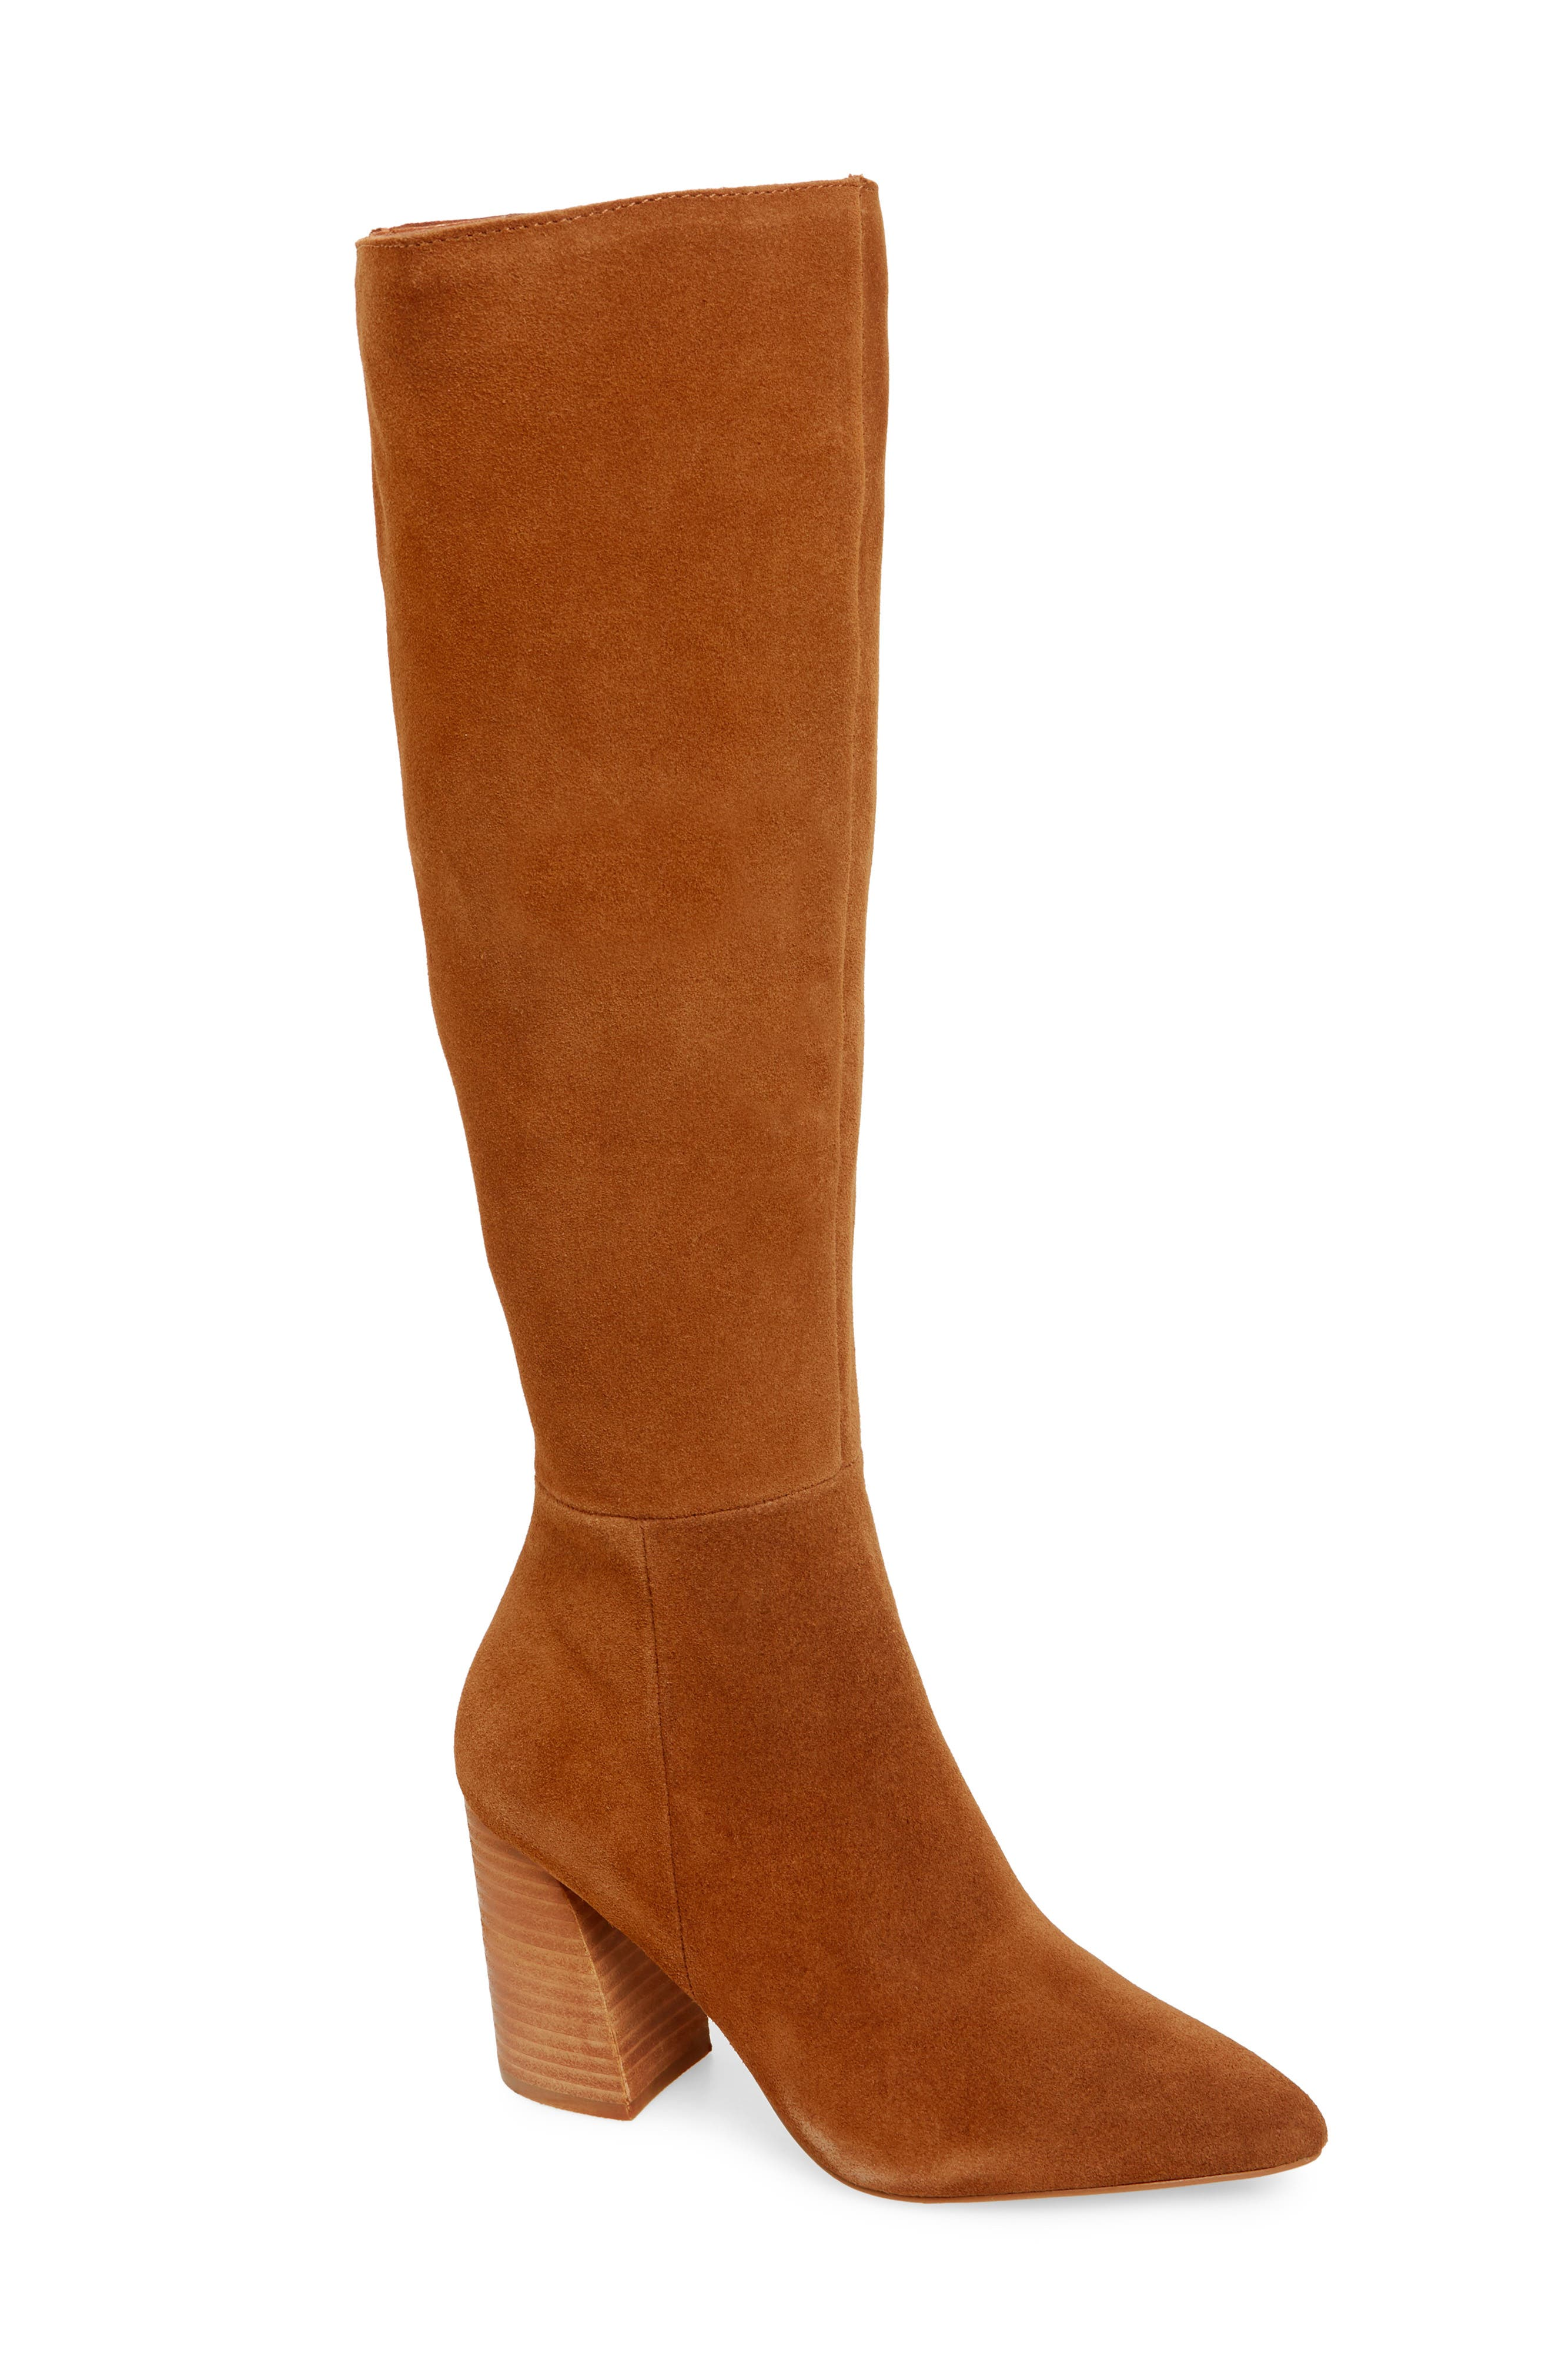 Serve Knee High Boot,                             Main thumbnail 1, color,                             CHESTNUT SUEDE